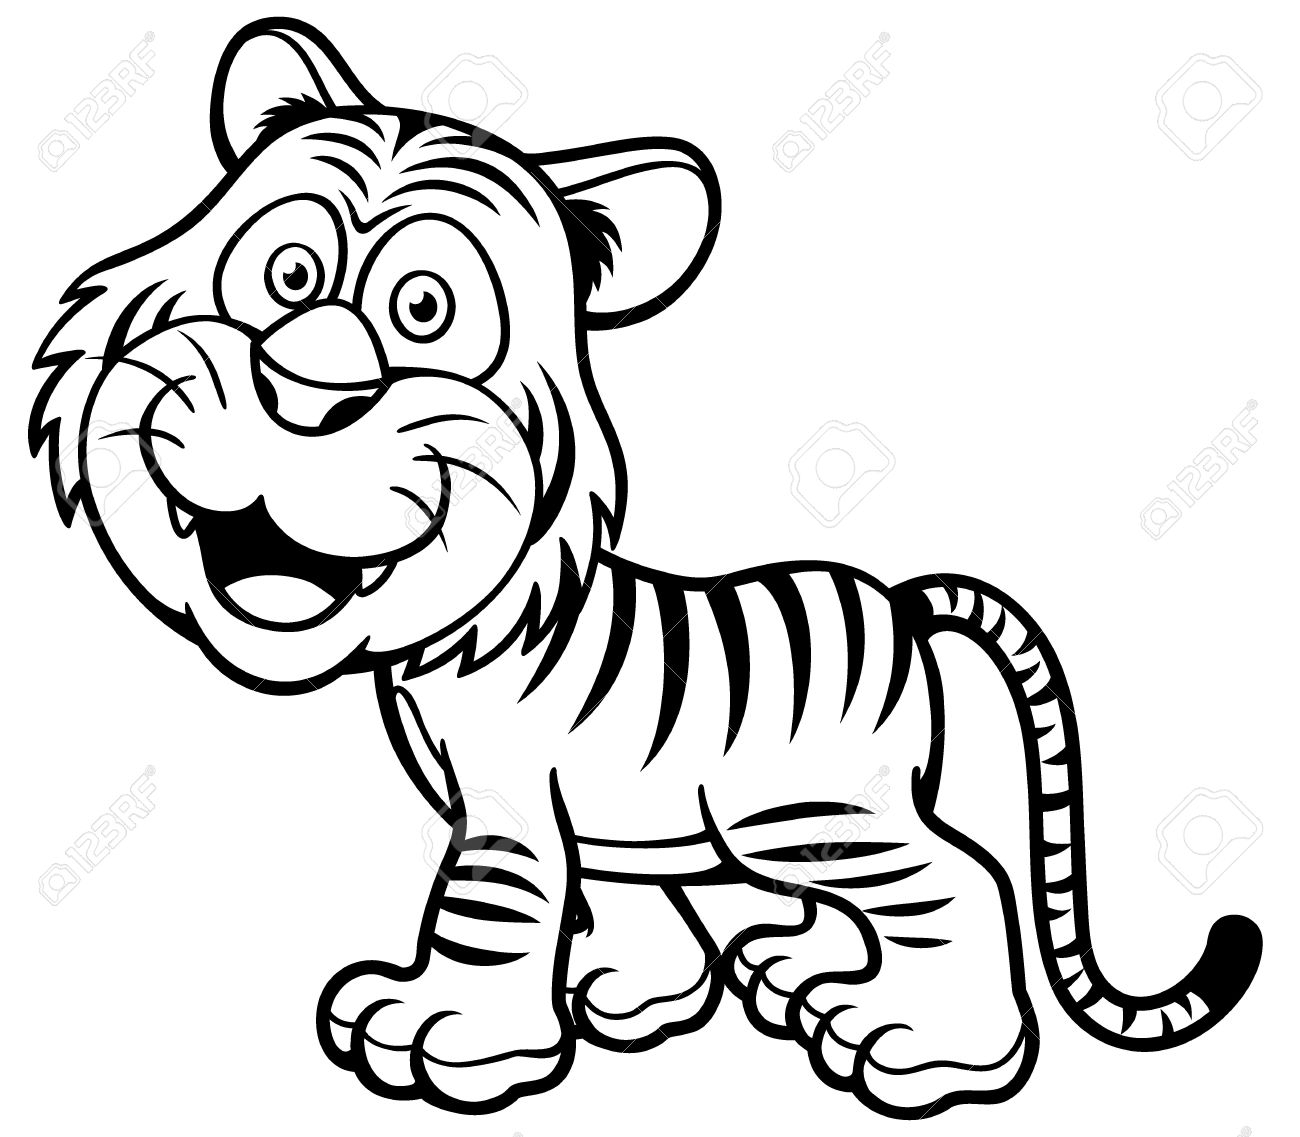 tigers drawing at getdrawings com auto electrical wiring diagram